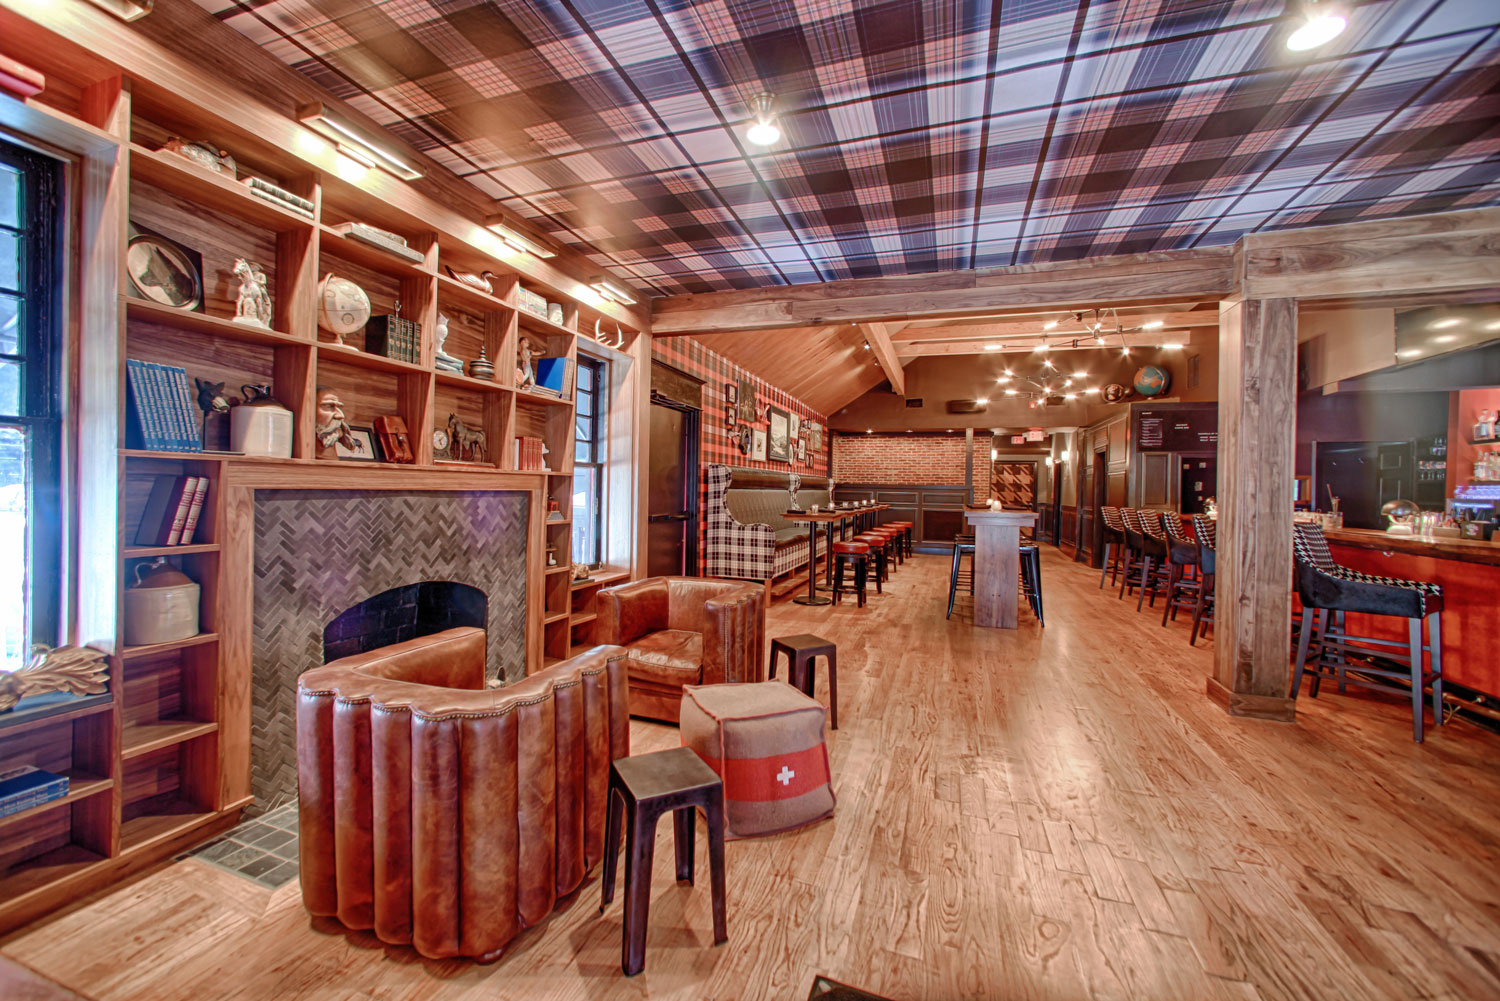 You Can Drink Cocktails Under A Plaid Ceiling At Foxtrot